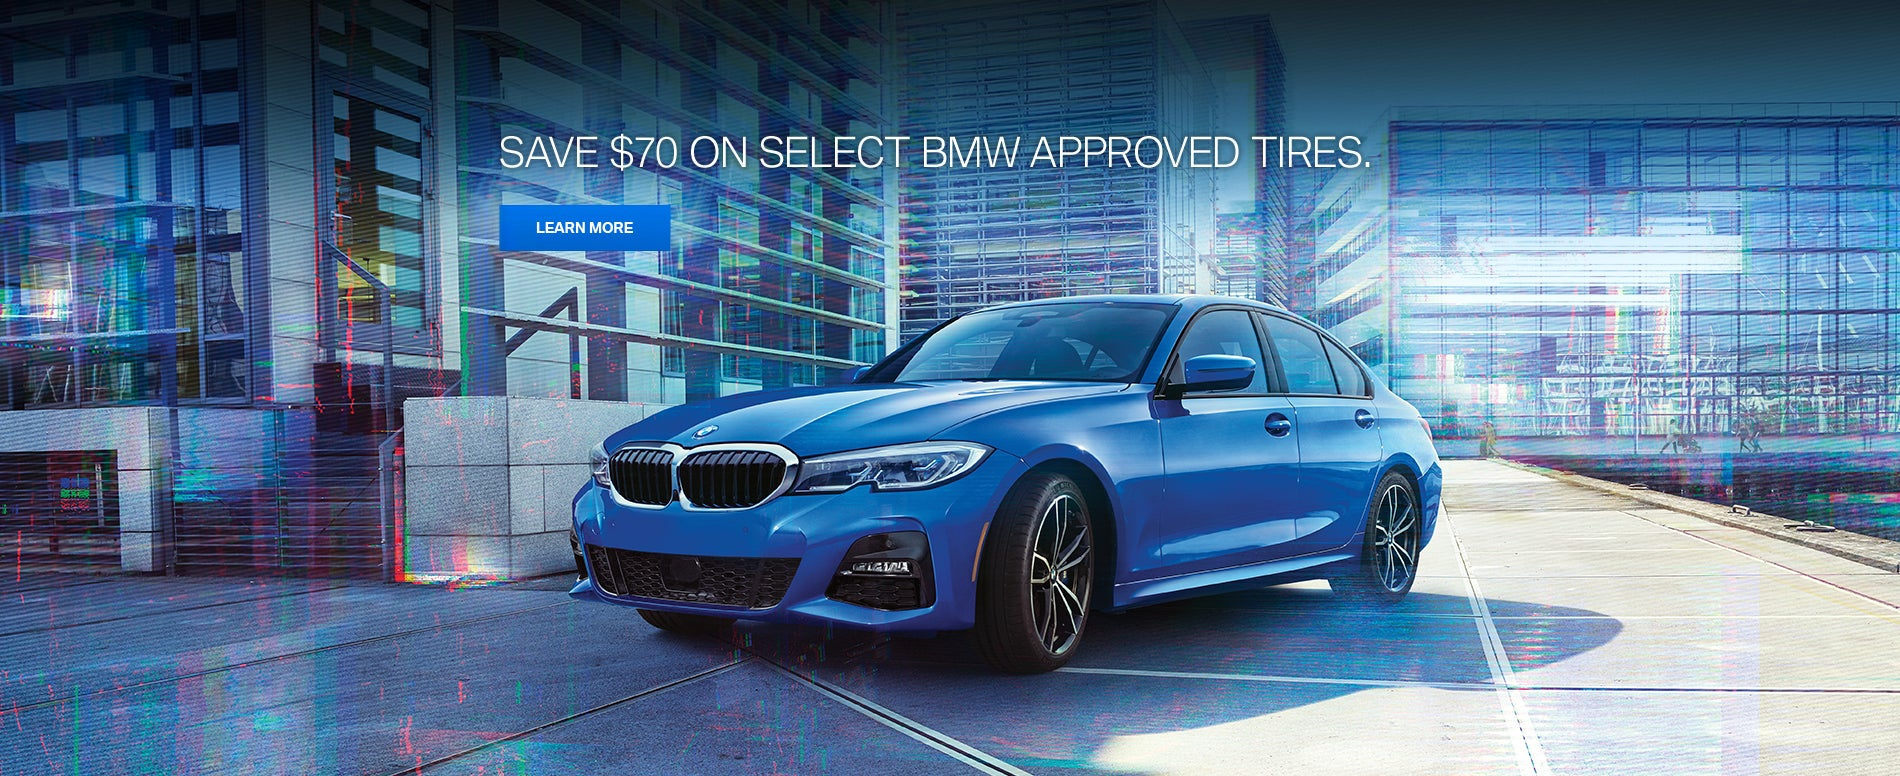 Bmw Of Morristown Bmw Dealer Morristown Nj New And Used Bmw Dealer